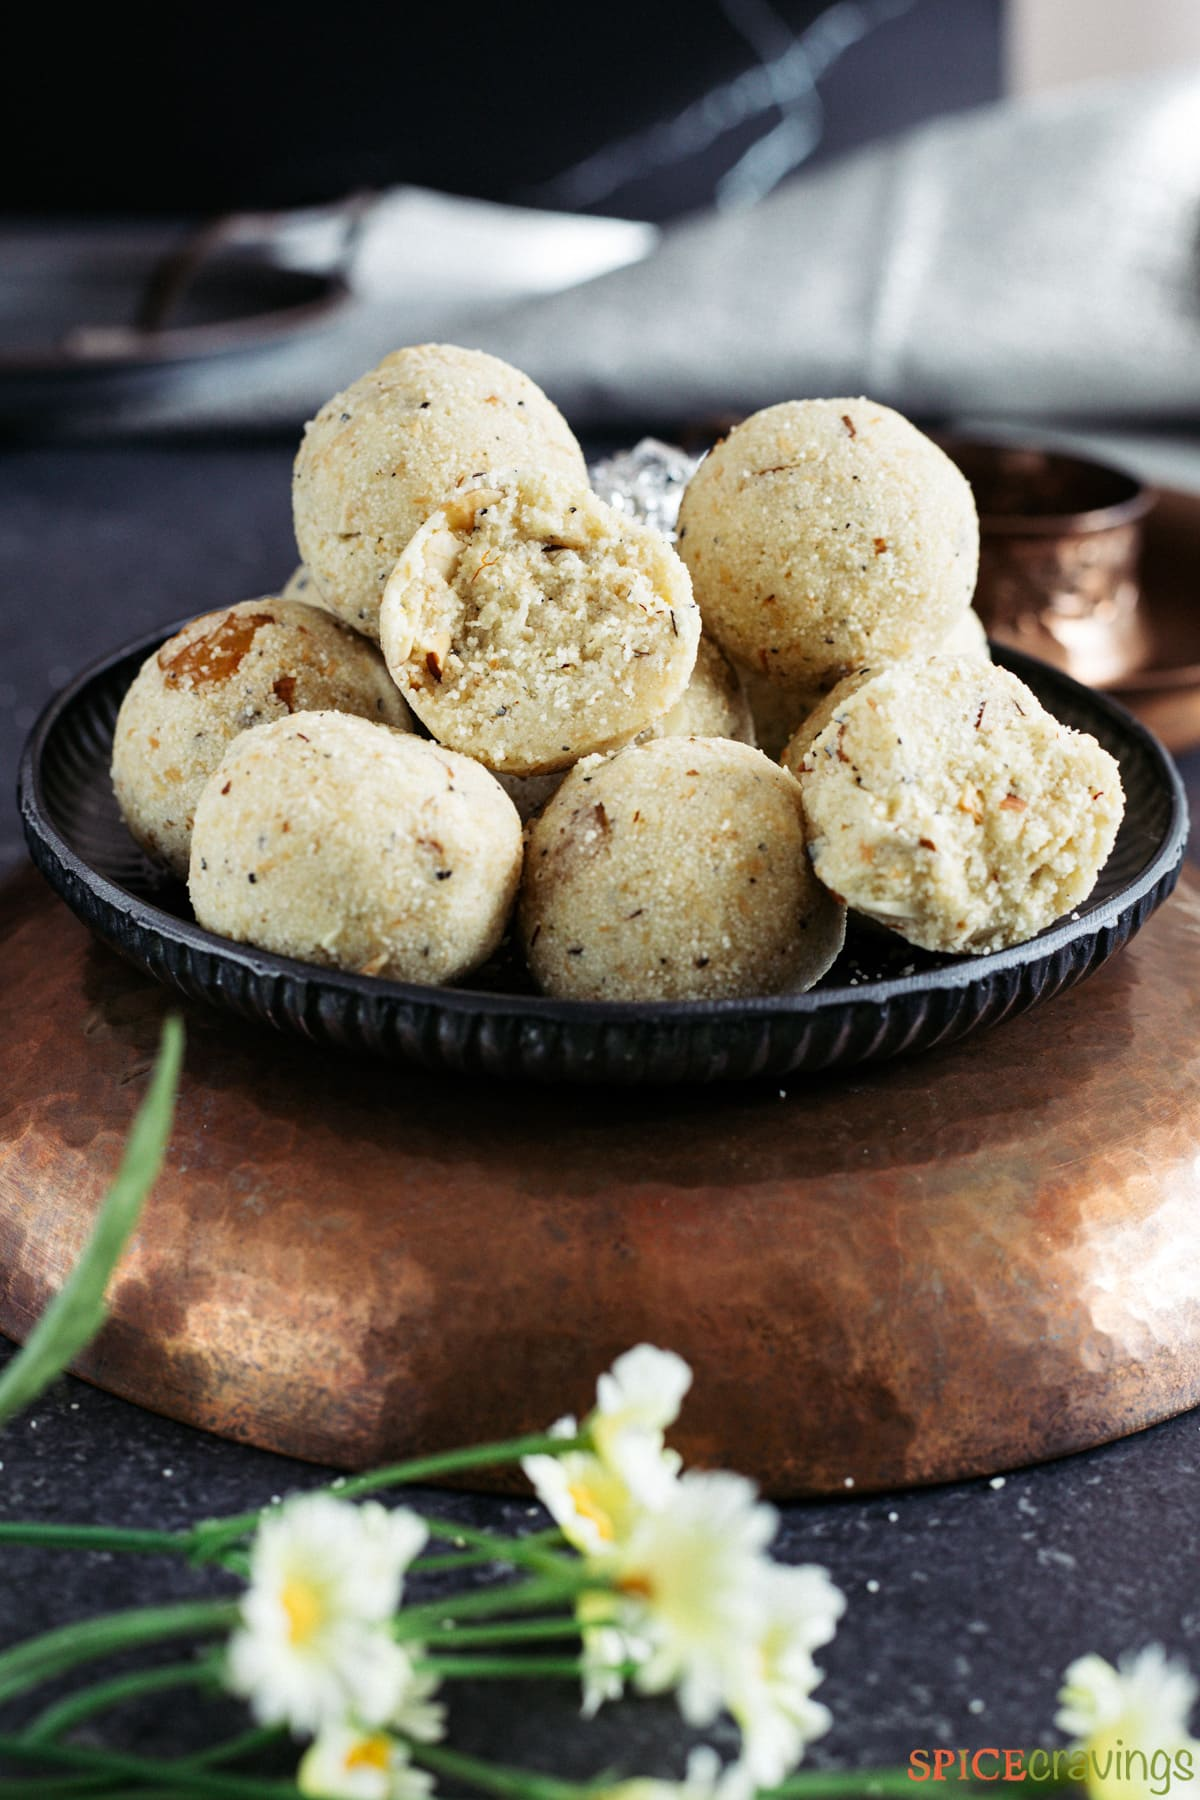 Rava laddu split in half, placed with other ladoos on metal plate